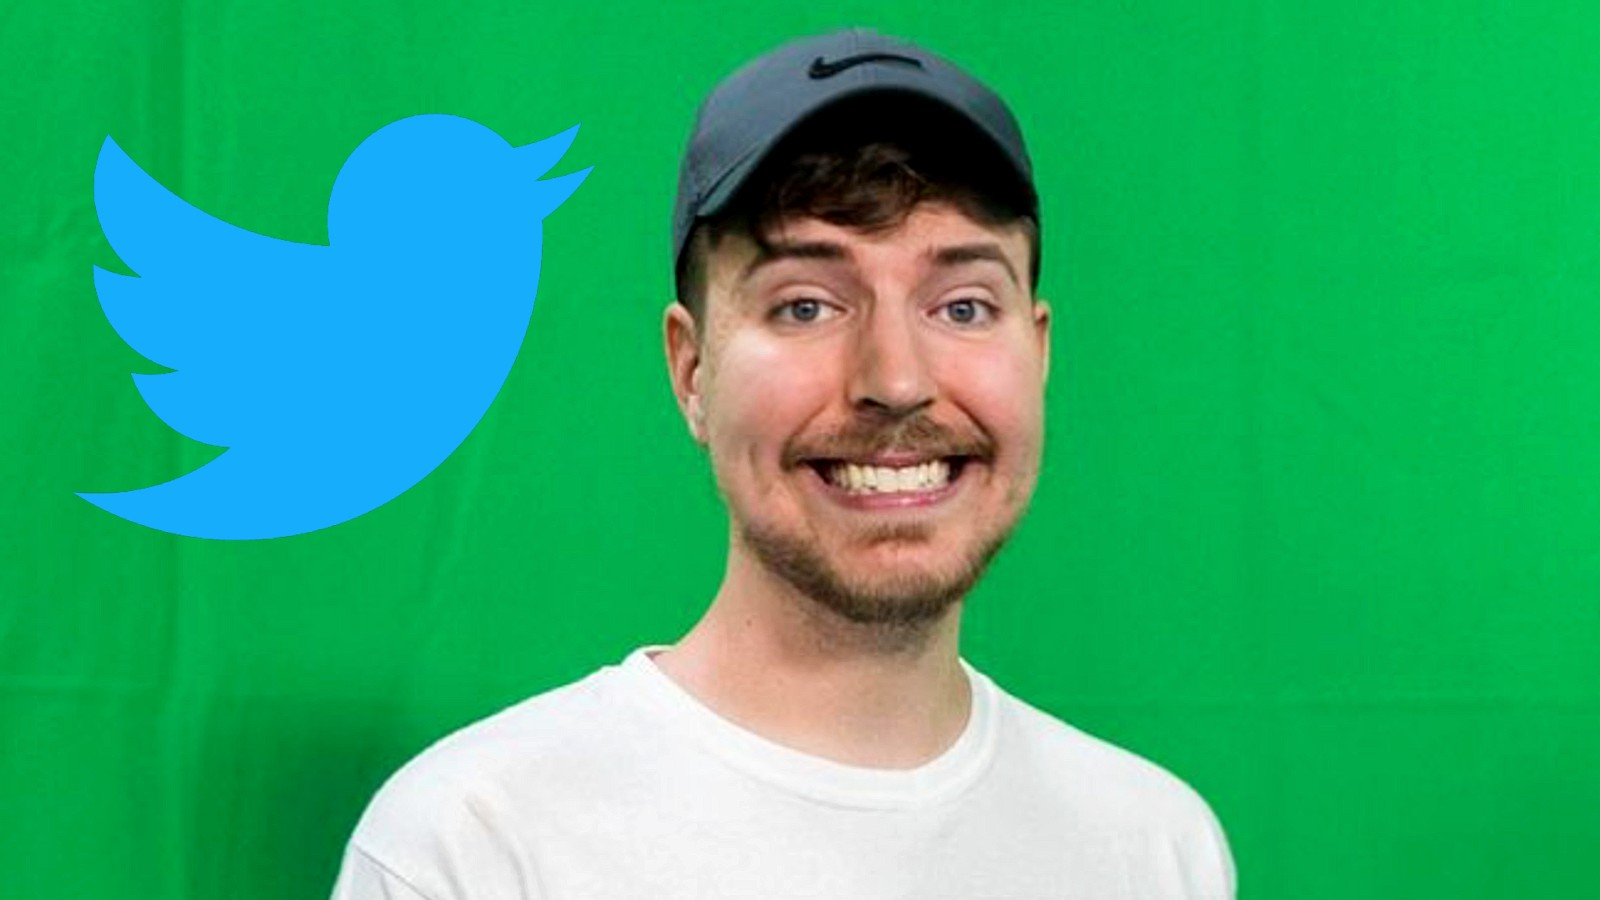 Mr Beast in front of a green screen next to the Twitter logo